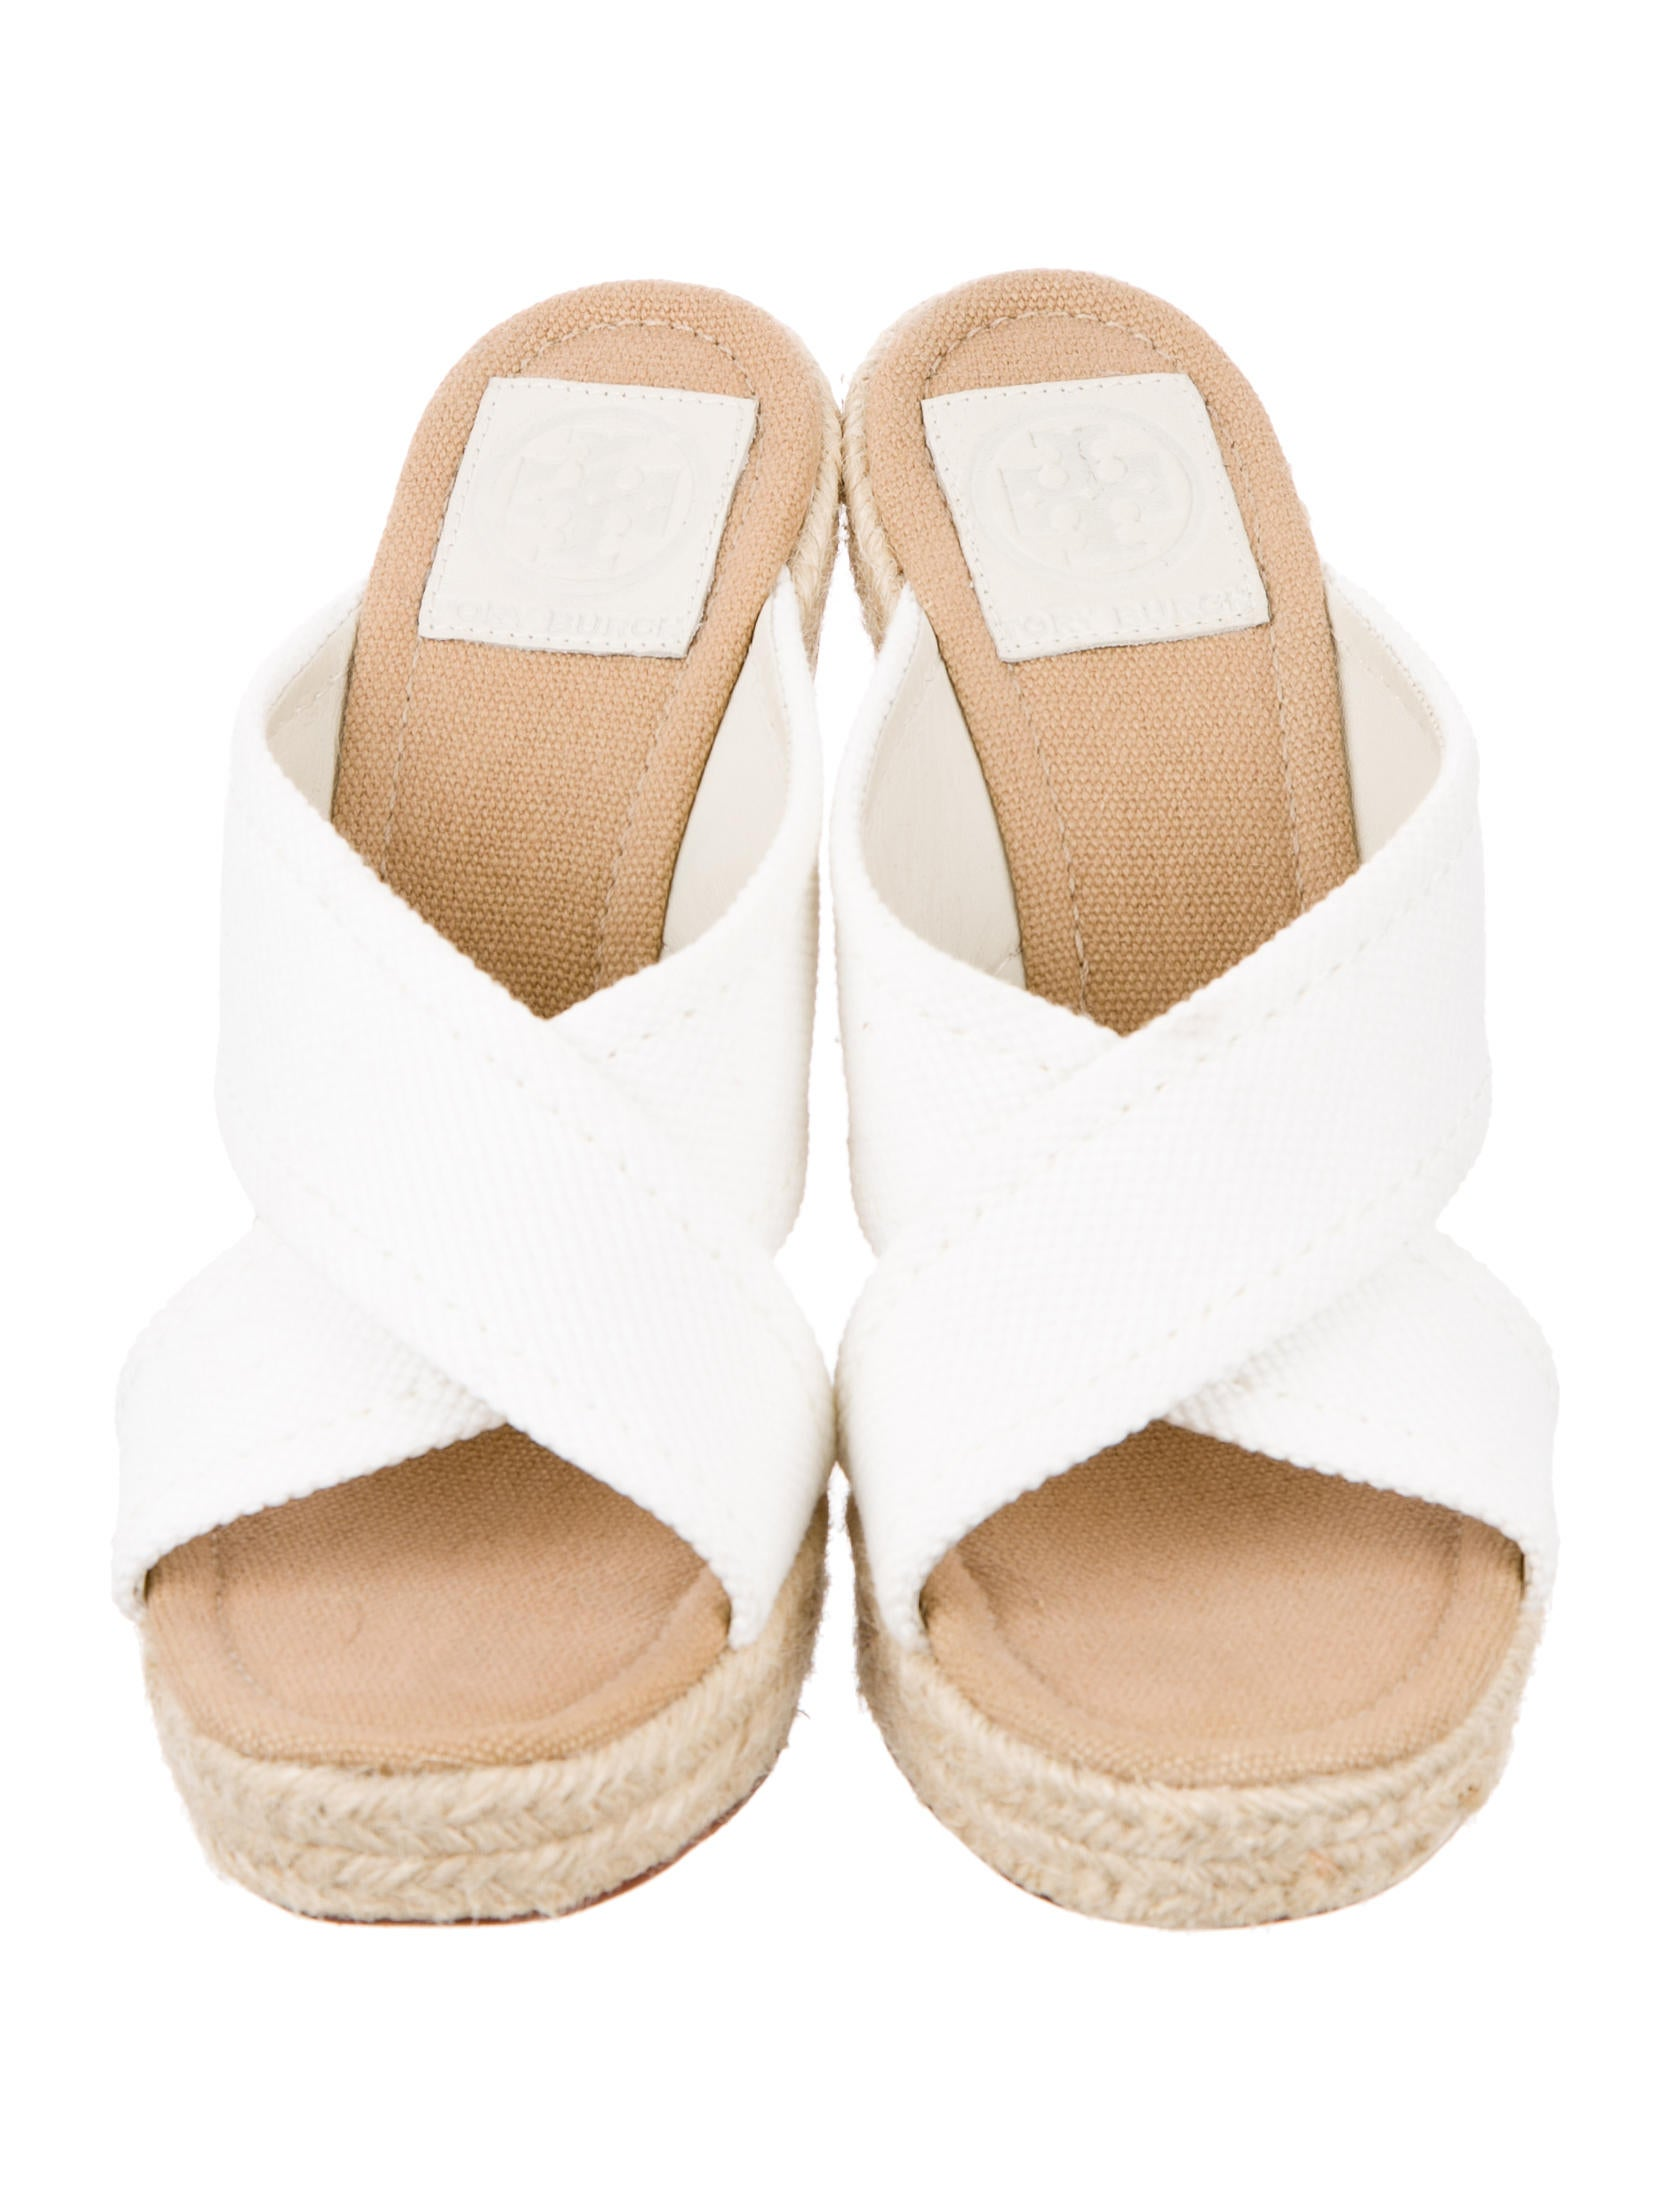 burch canvas wedge sandals shoes wto88551 the